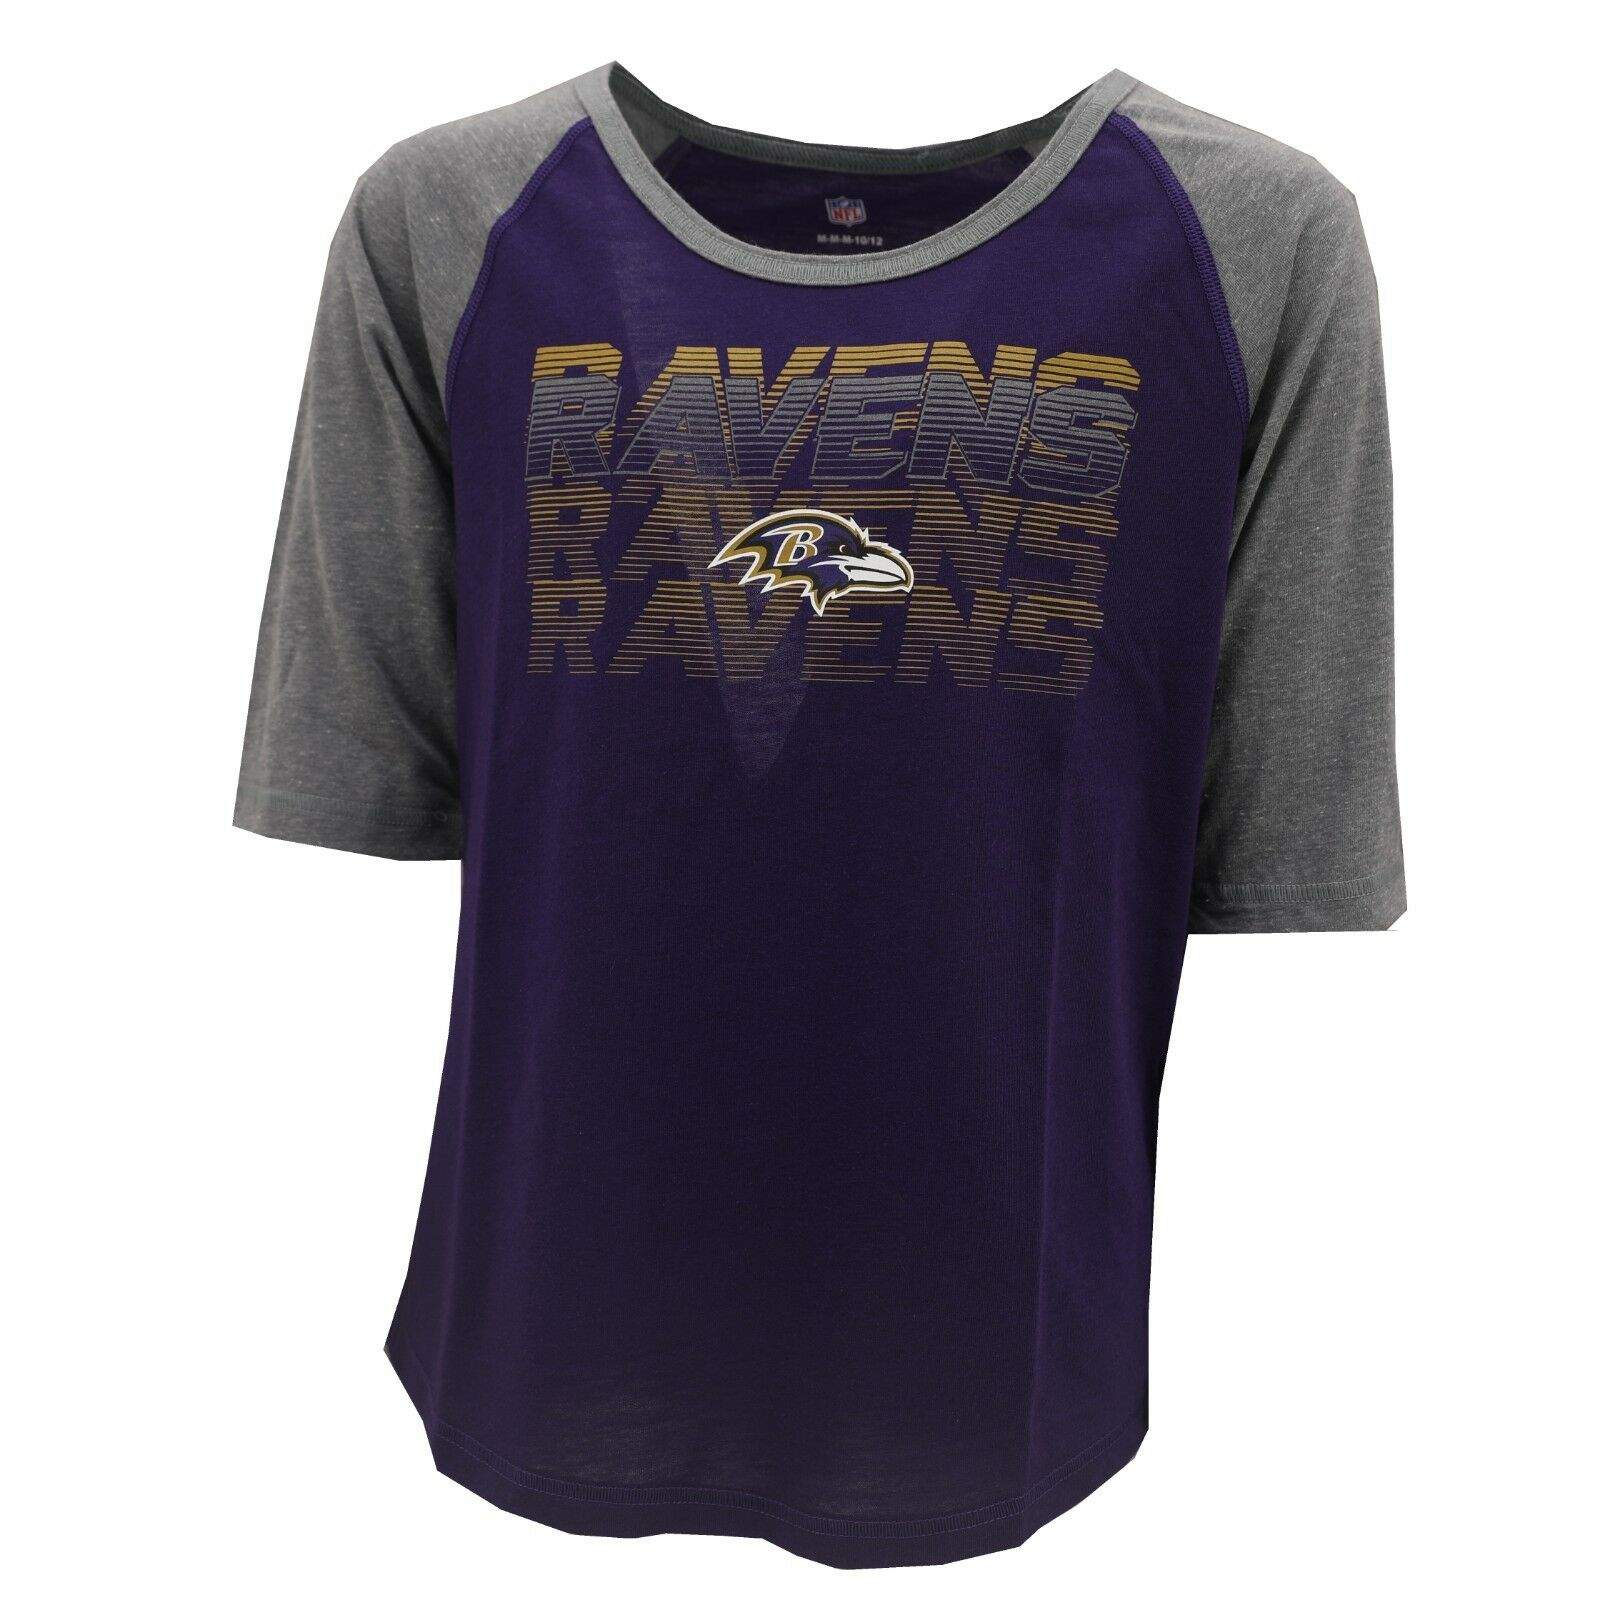 3ff0fcf74 Details about Baltimore Ravens Official NFL Apparel Kids Youth Girls Size  Shirt New with Tags